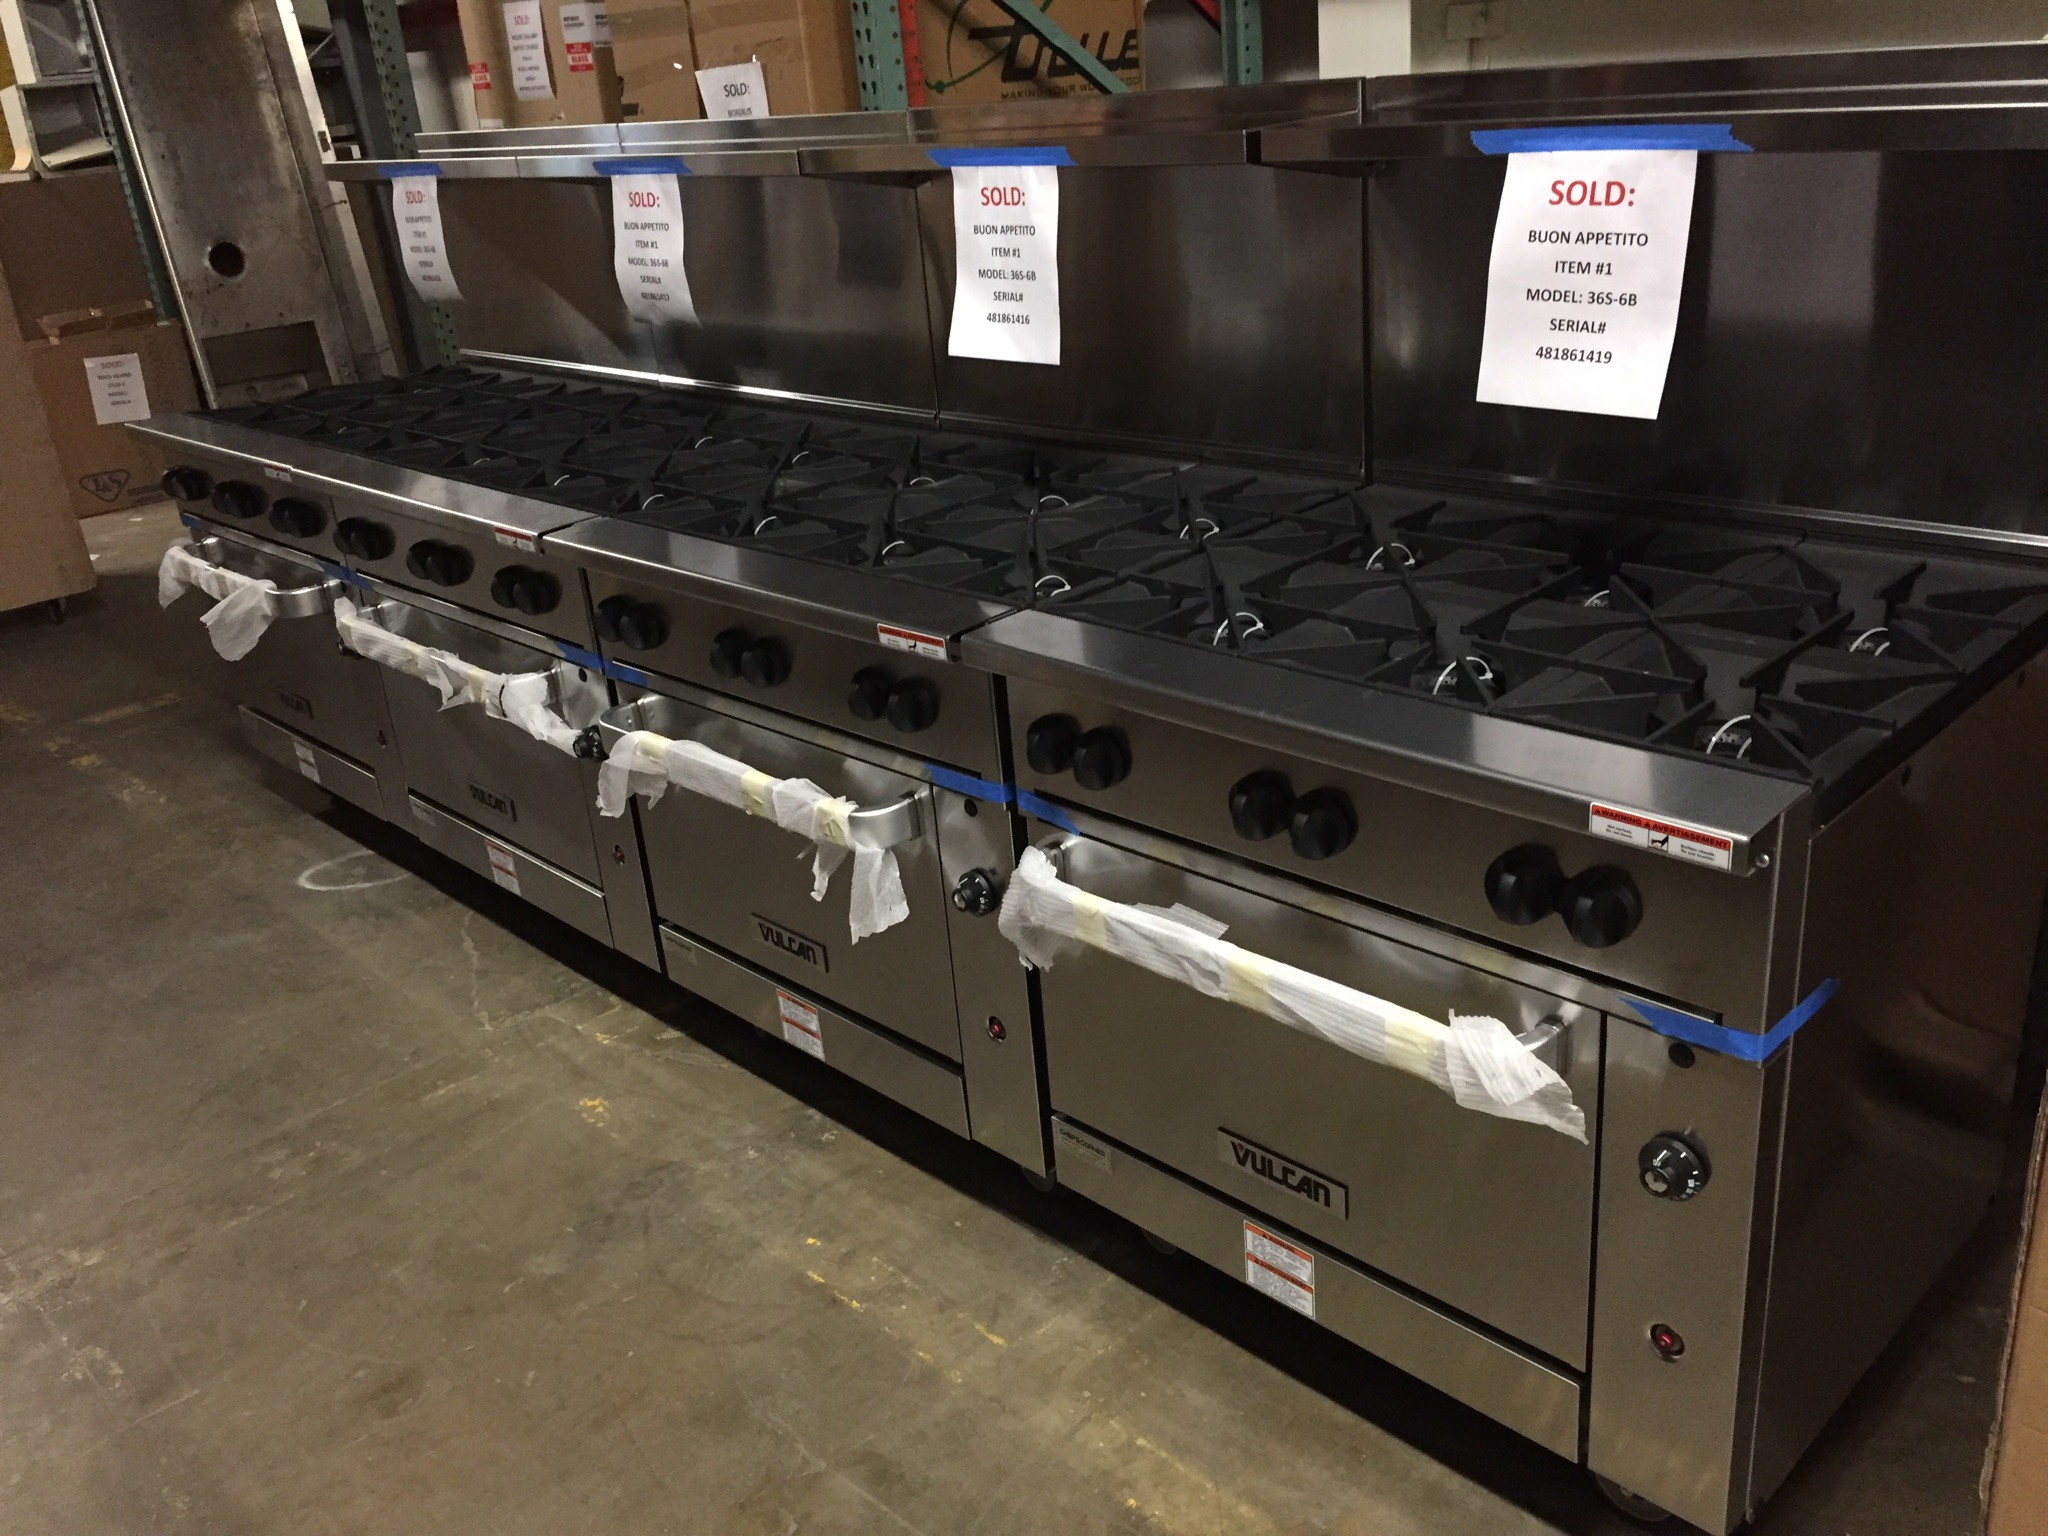 vulcan kitchen booth buon appetito bayonne nj gas manifold rebuild new cooking lineup